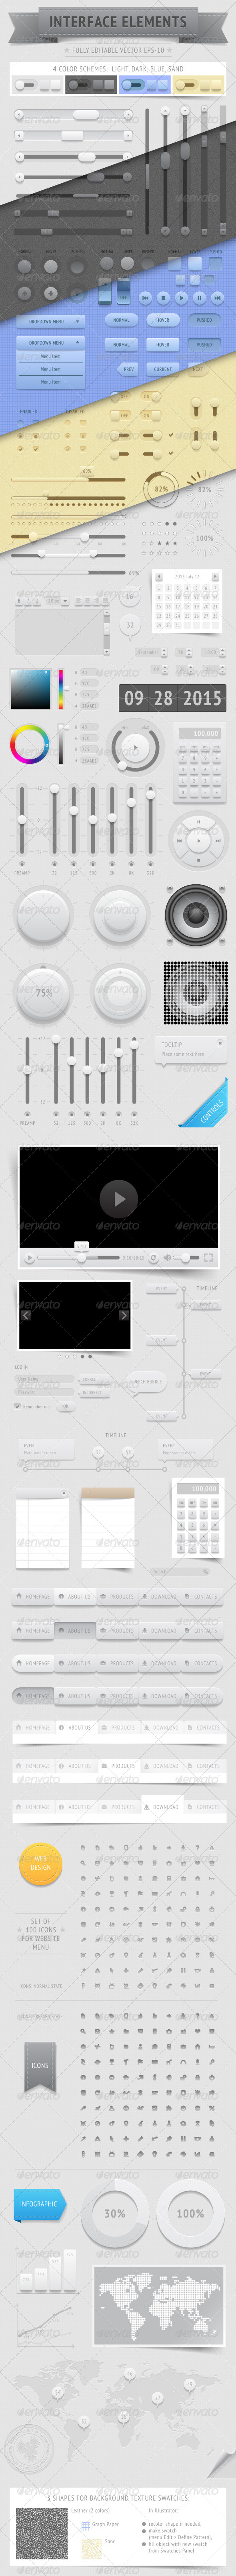 GraphicRiver Vector UI Elements in 4 Color Schemes 5520821